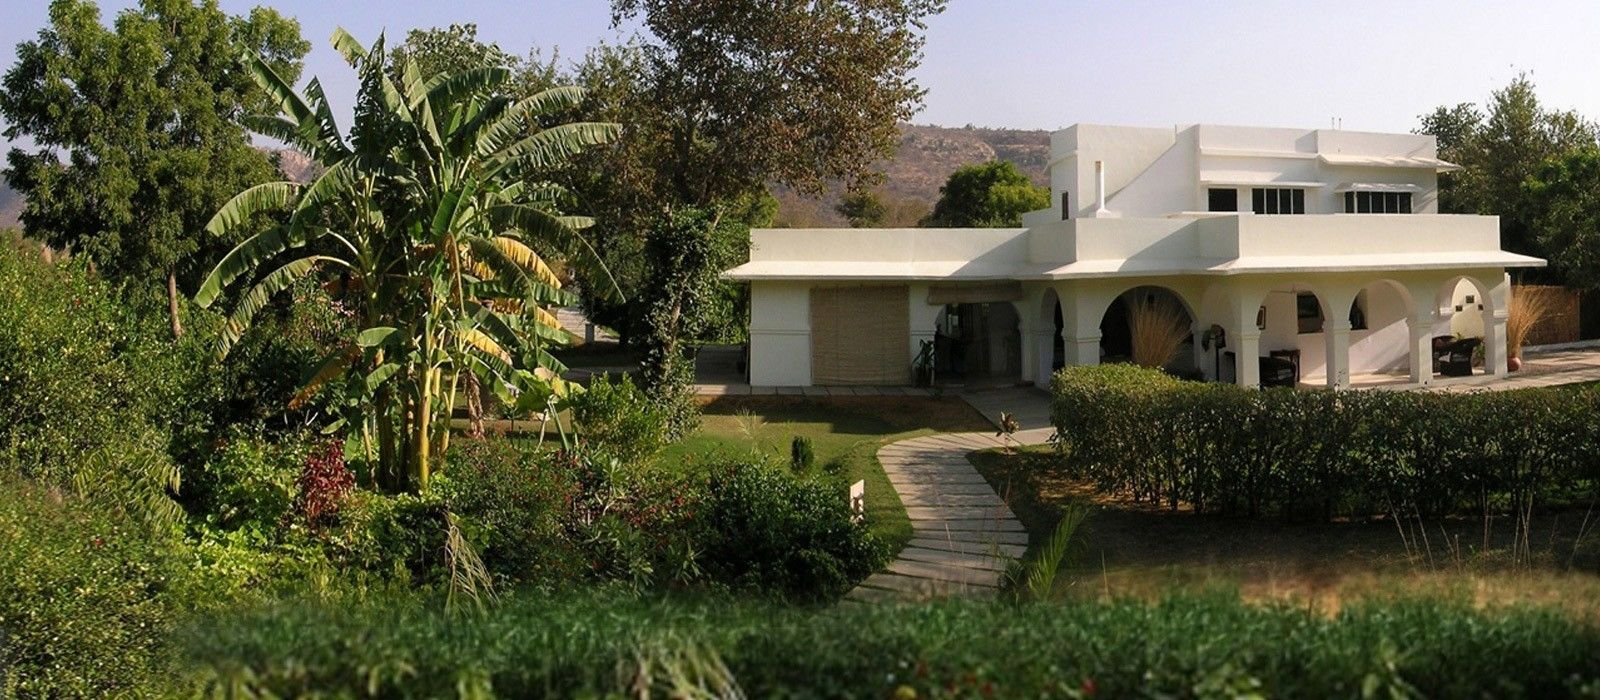 Hotel Khem Villas North India